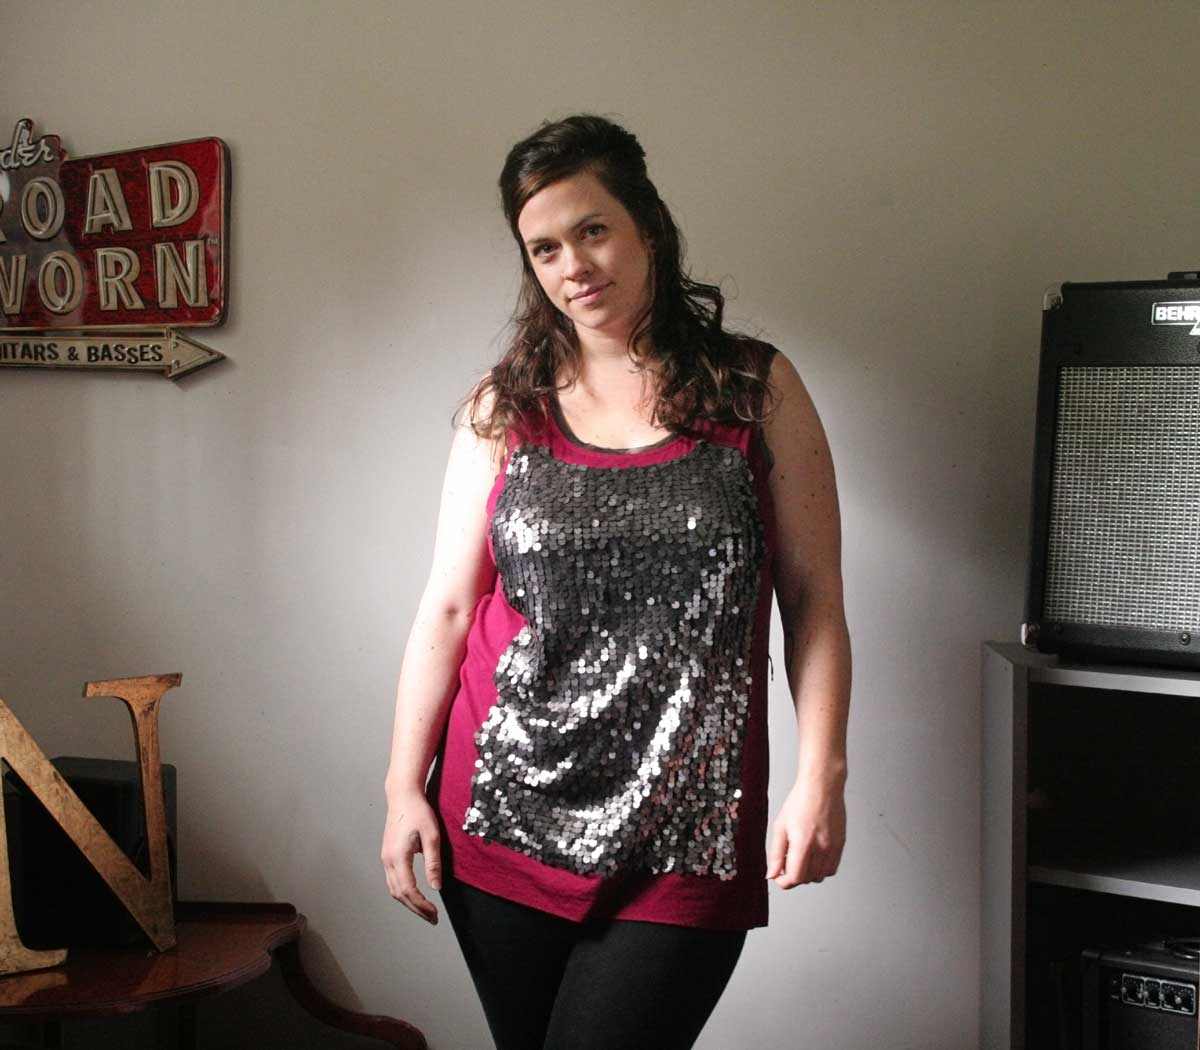 e8dd746dcb3a58 Simply Vera Vera Wang Top & Mossimo Leggings. I'm Wearing: 5 Outfits from  thredUP, $62 for Everything